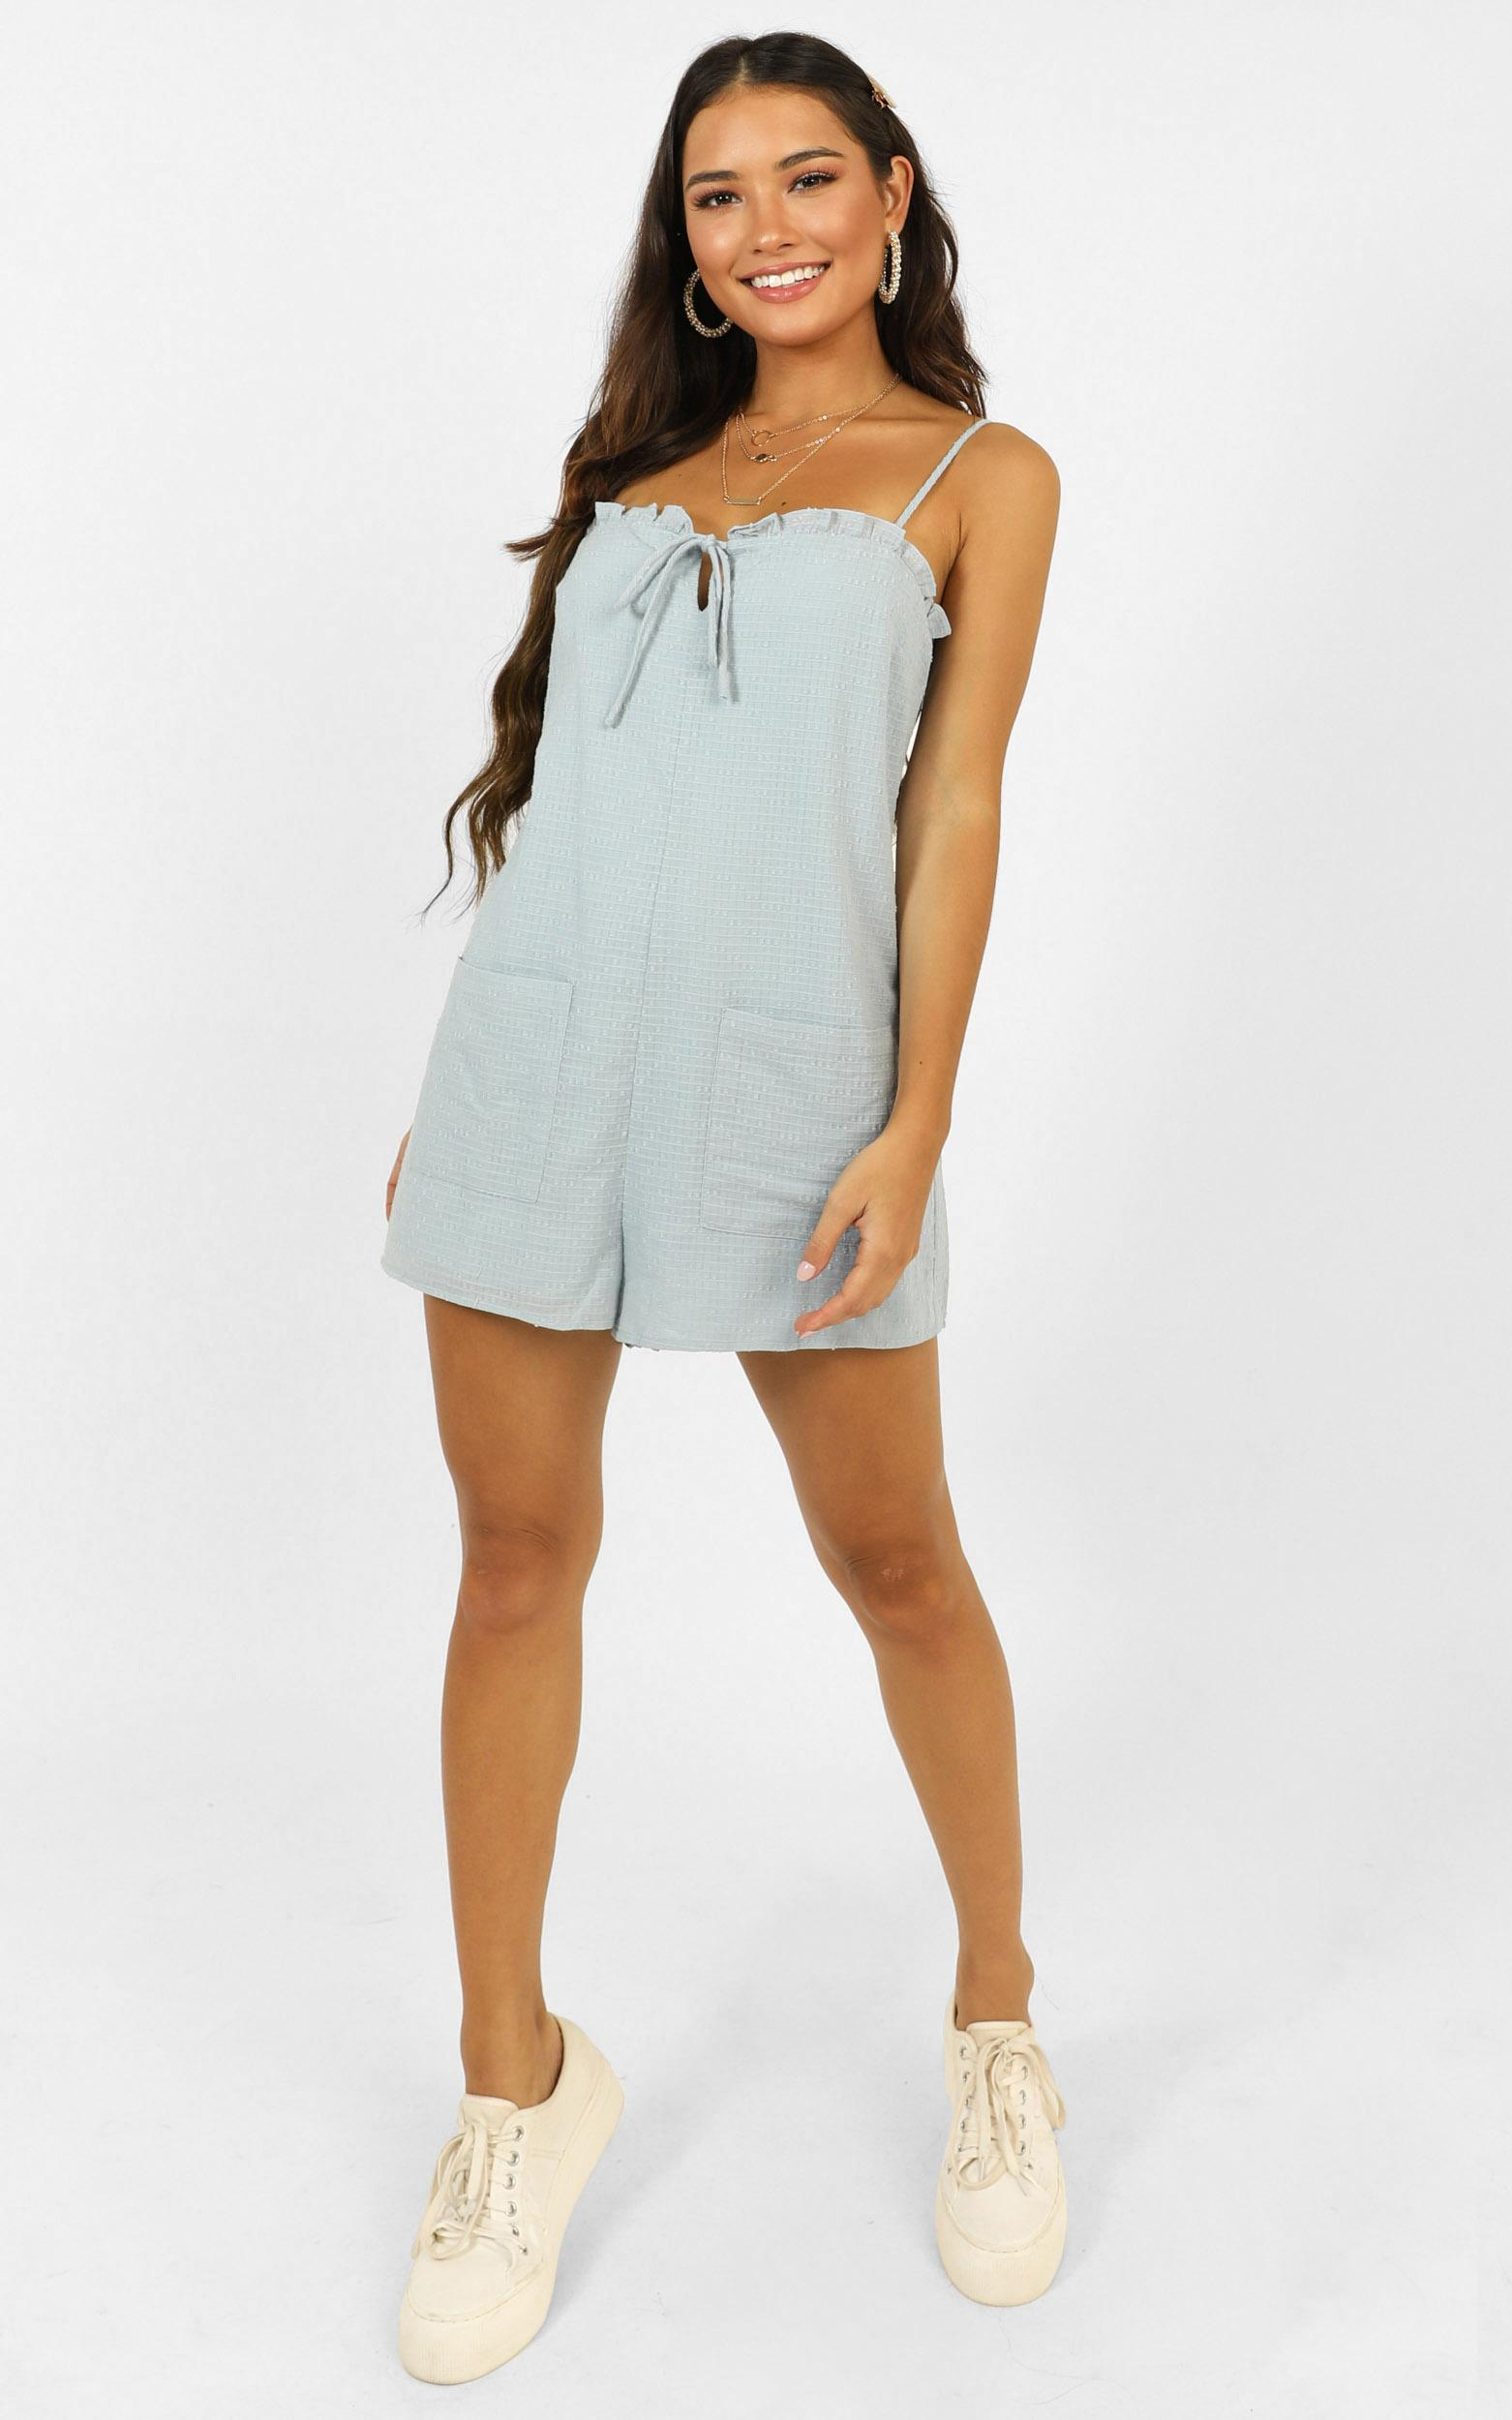 Sugar Rush Playsuit in blue - 6 (XS), Blue, hi-res image number null